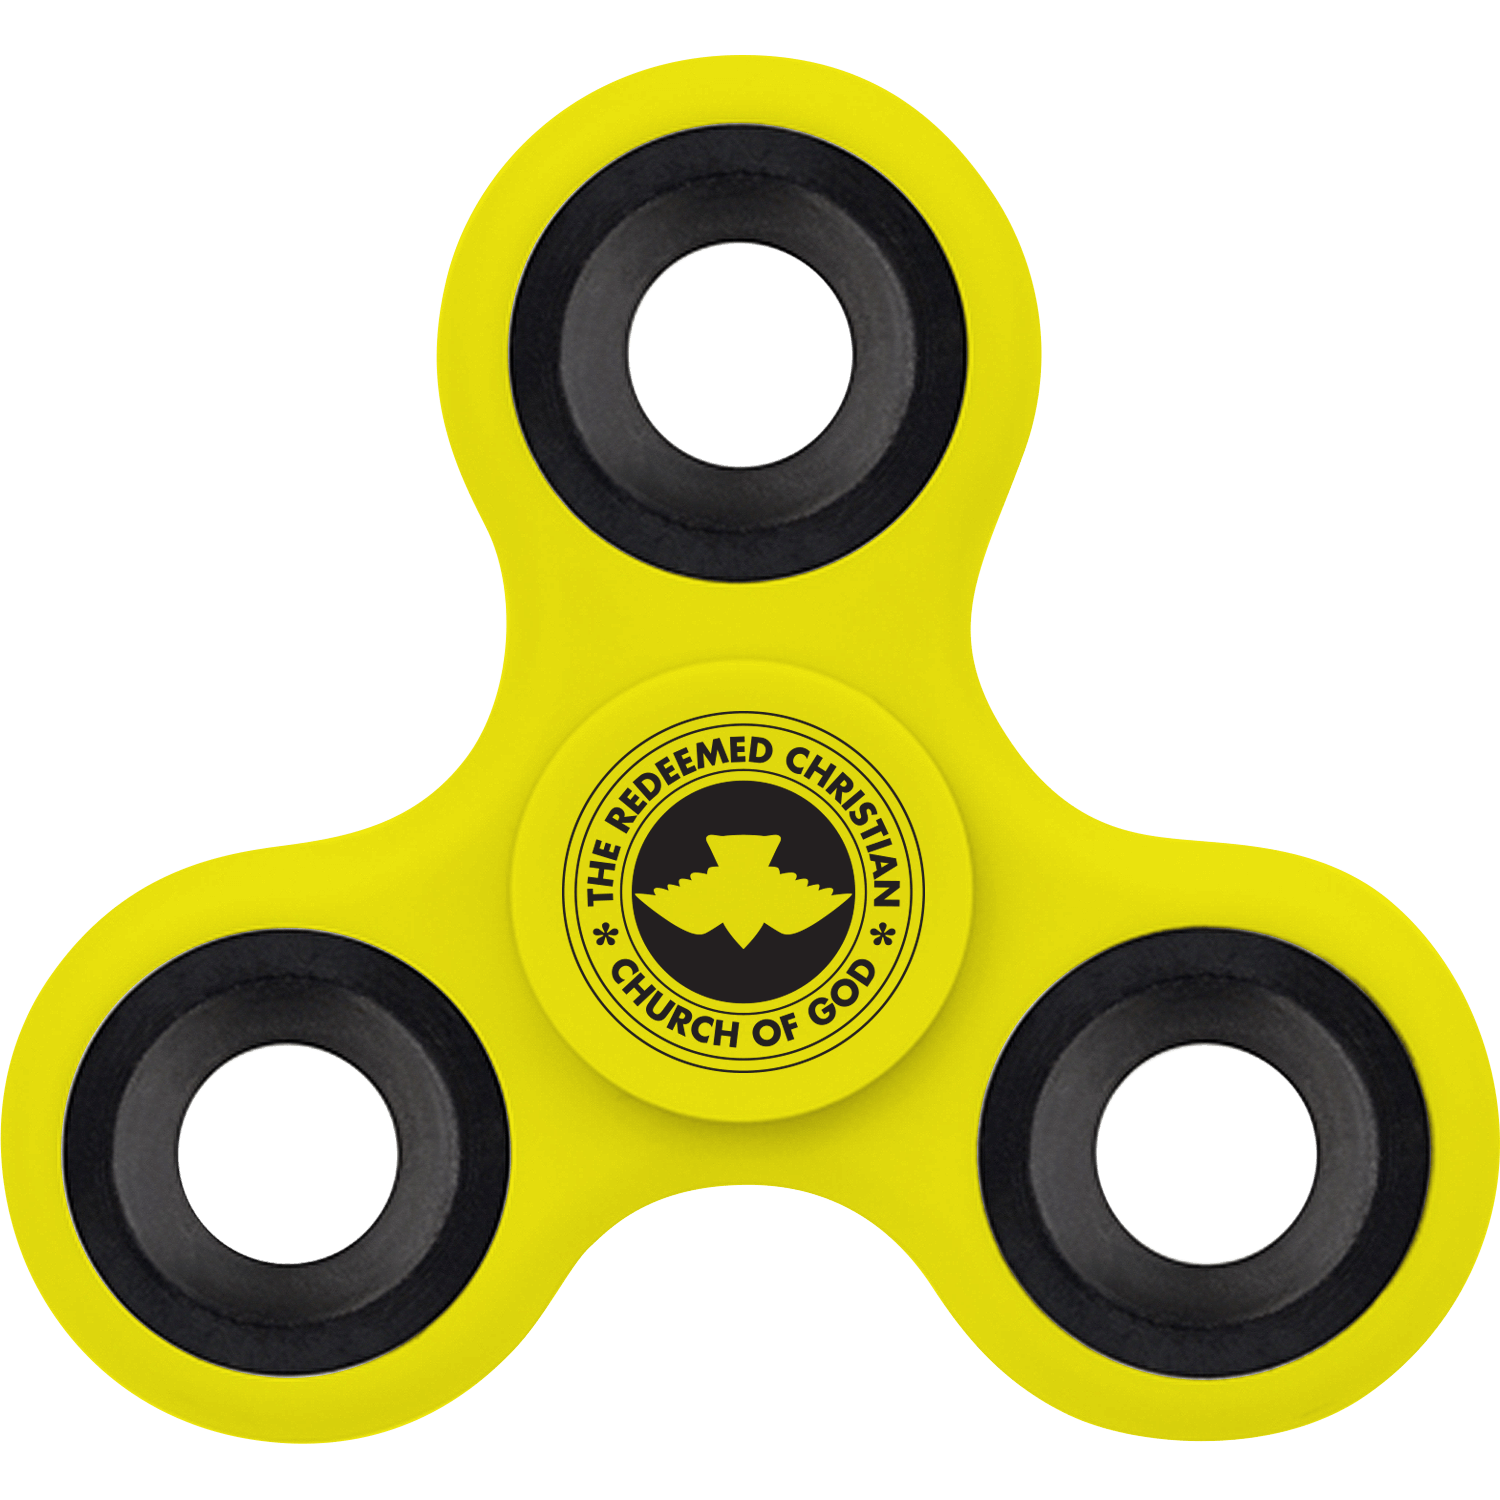 Fidget Spinner Emblem Yellow Picture